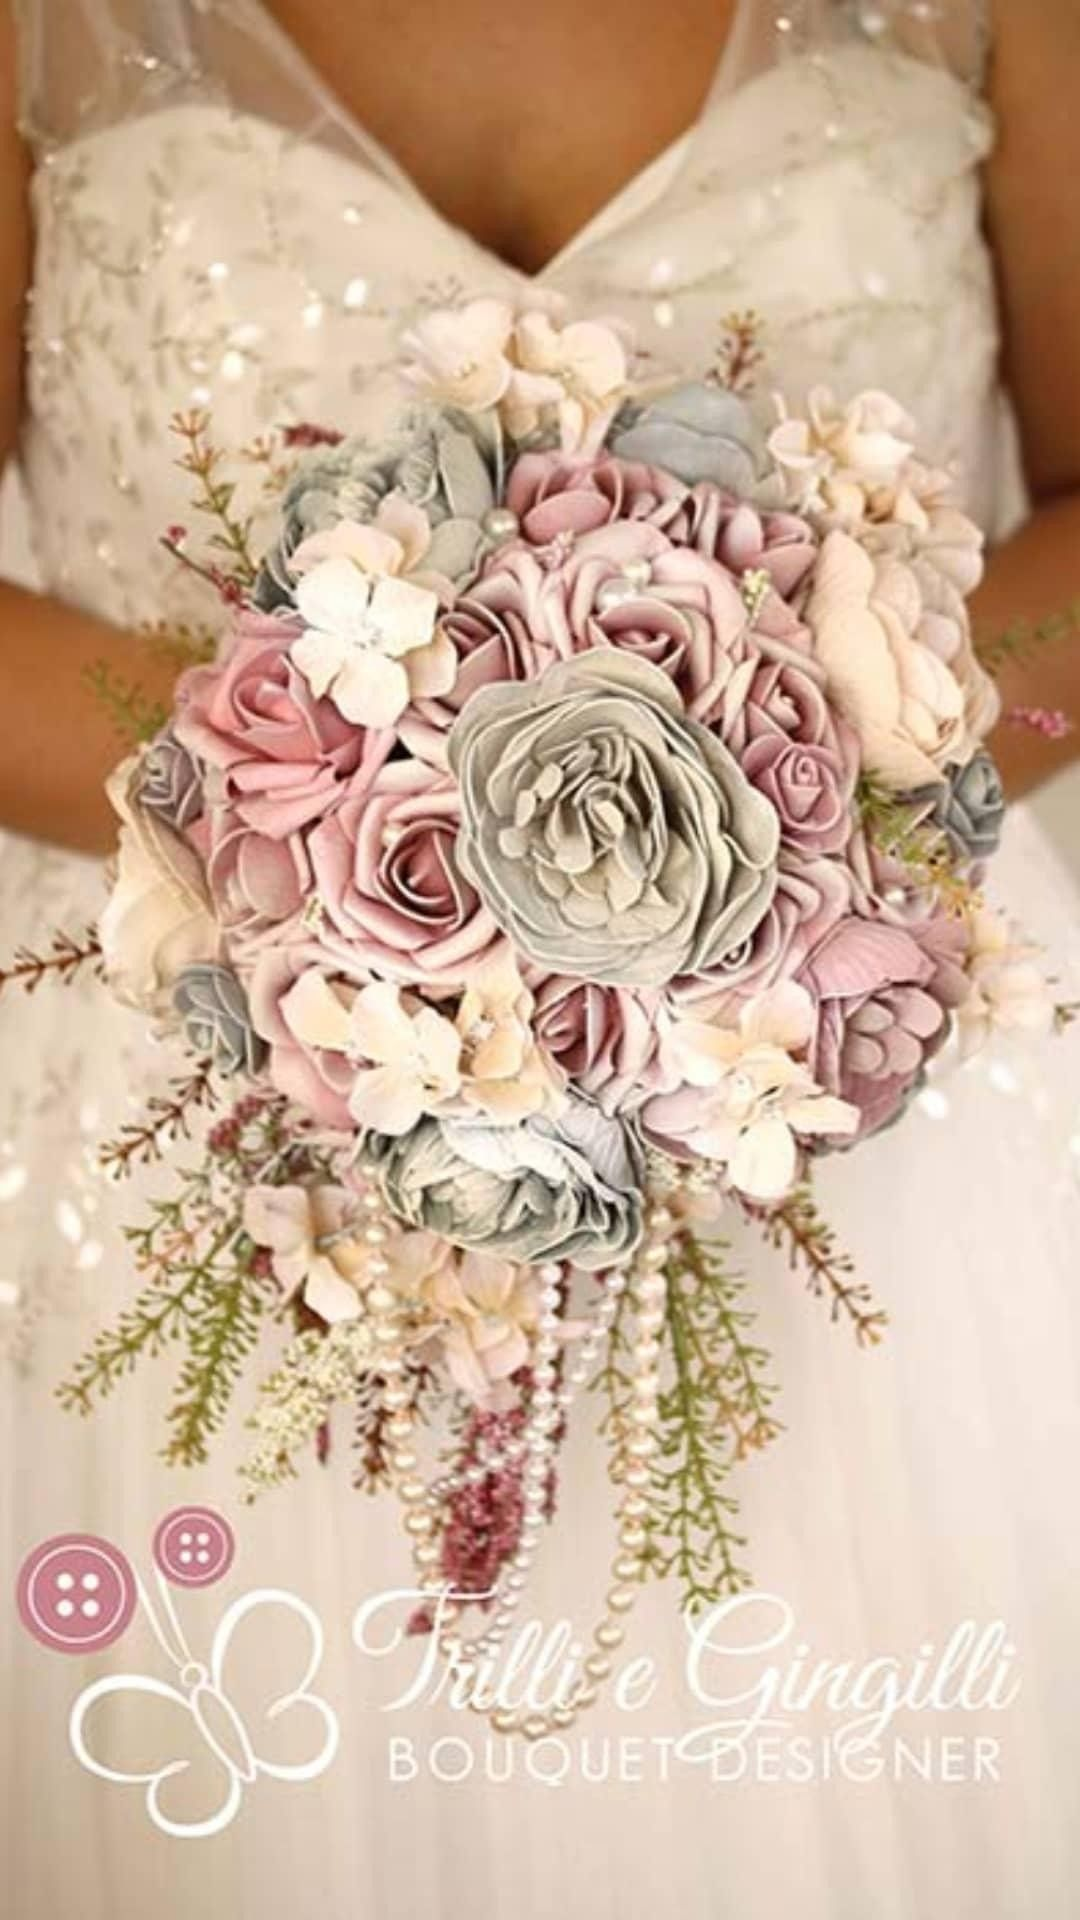 Bouquet Sposa Originale.Bouquet Sposa Alternativo Originale Per Matrimonio In Stile Boho